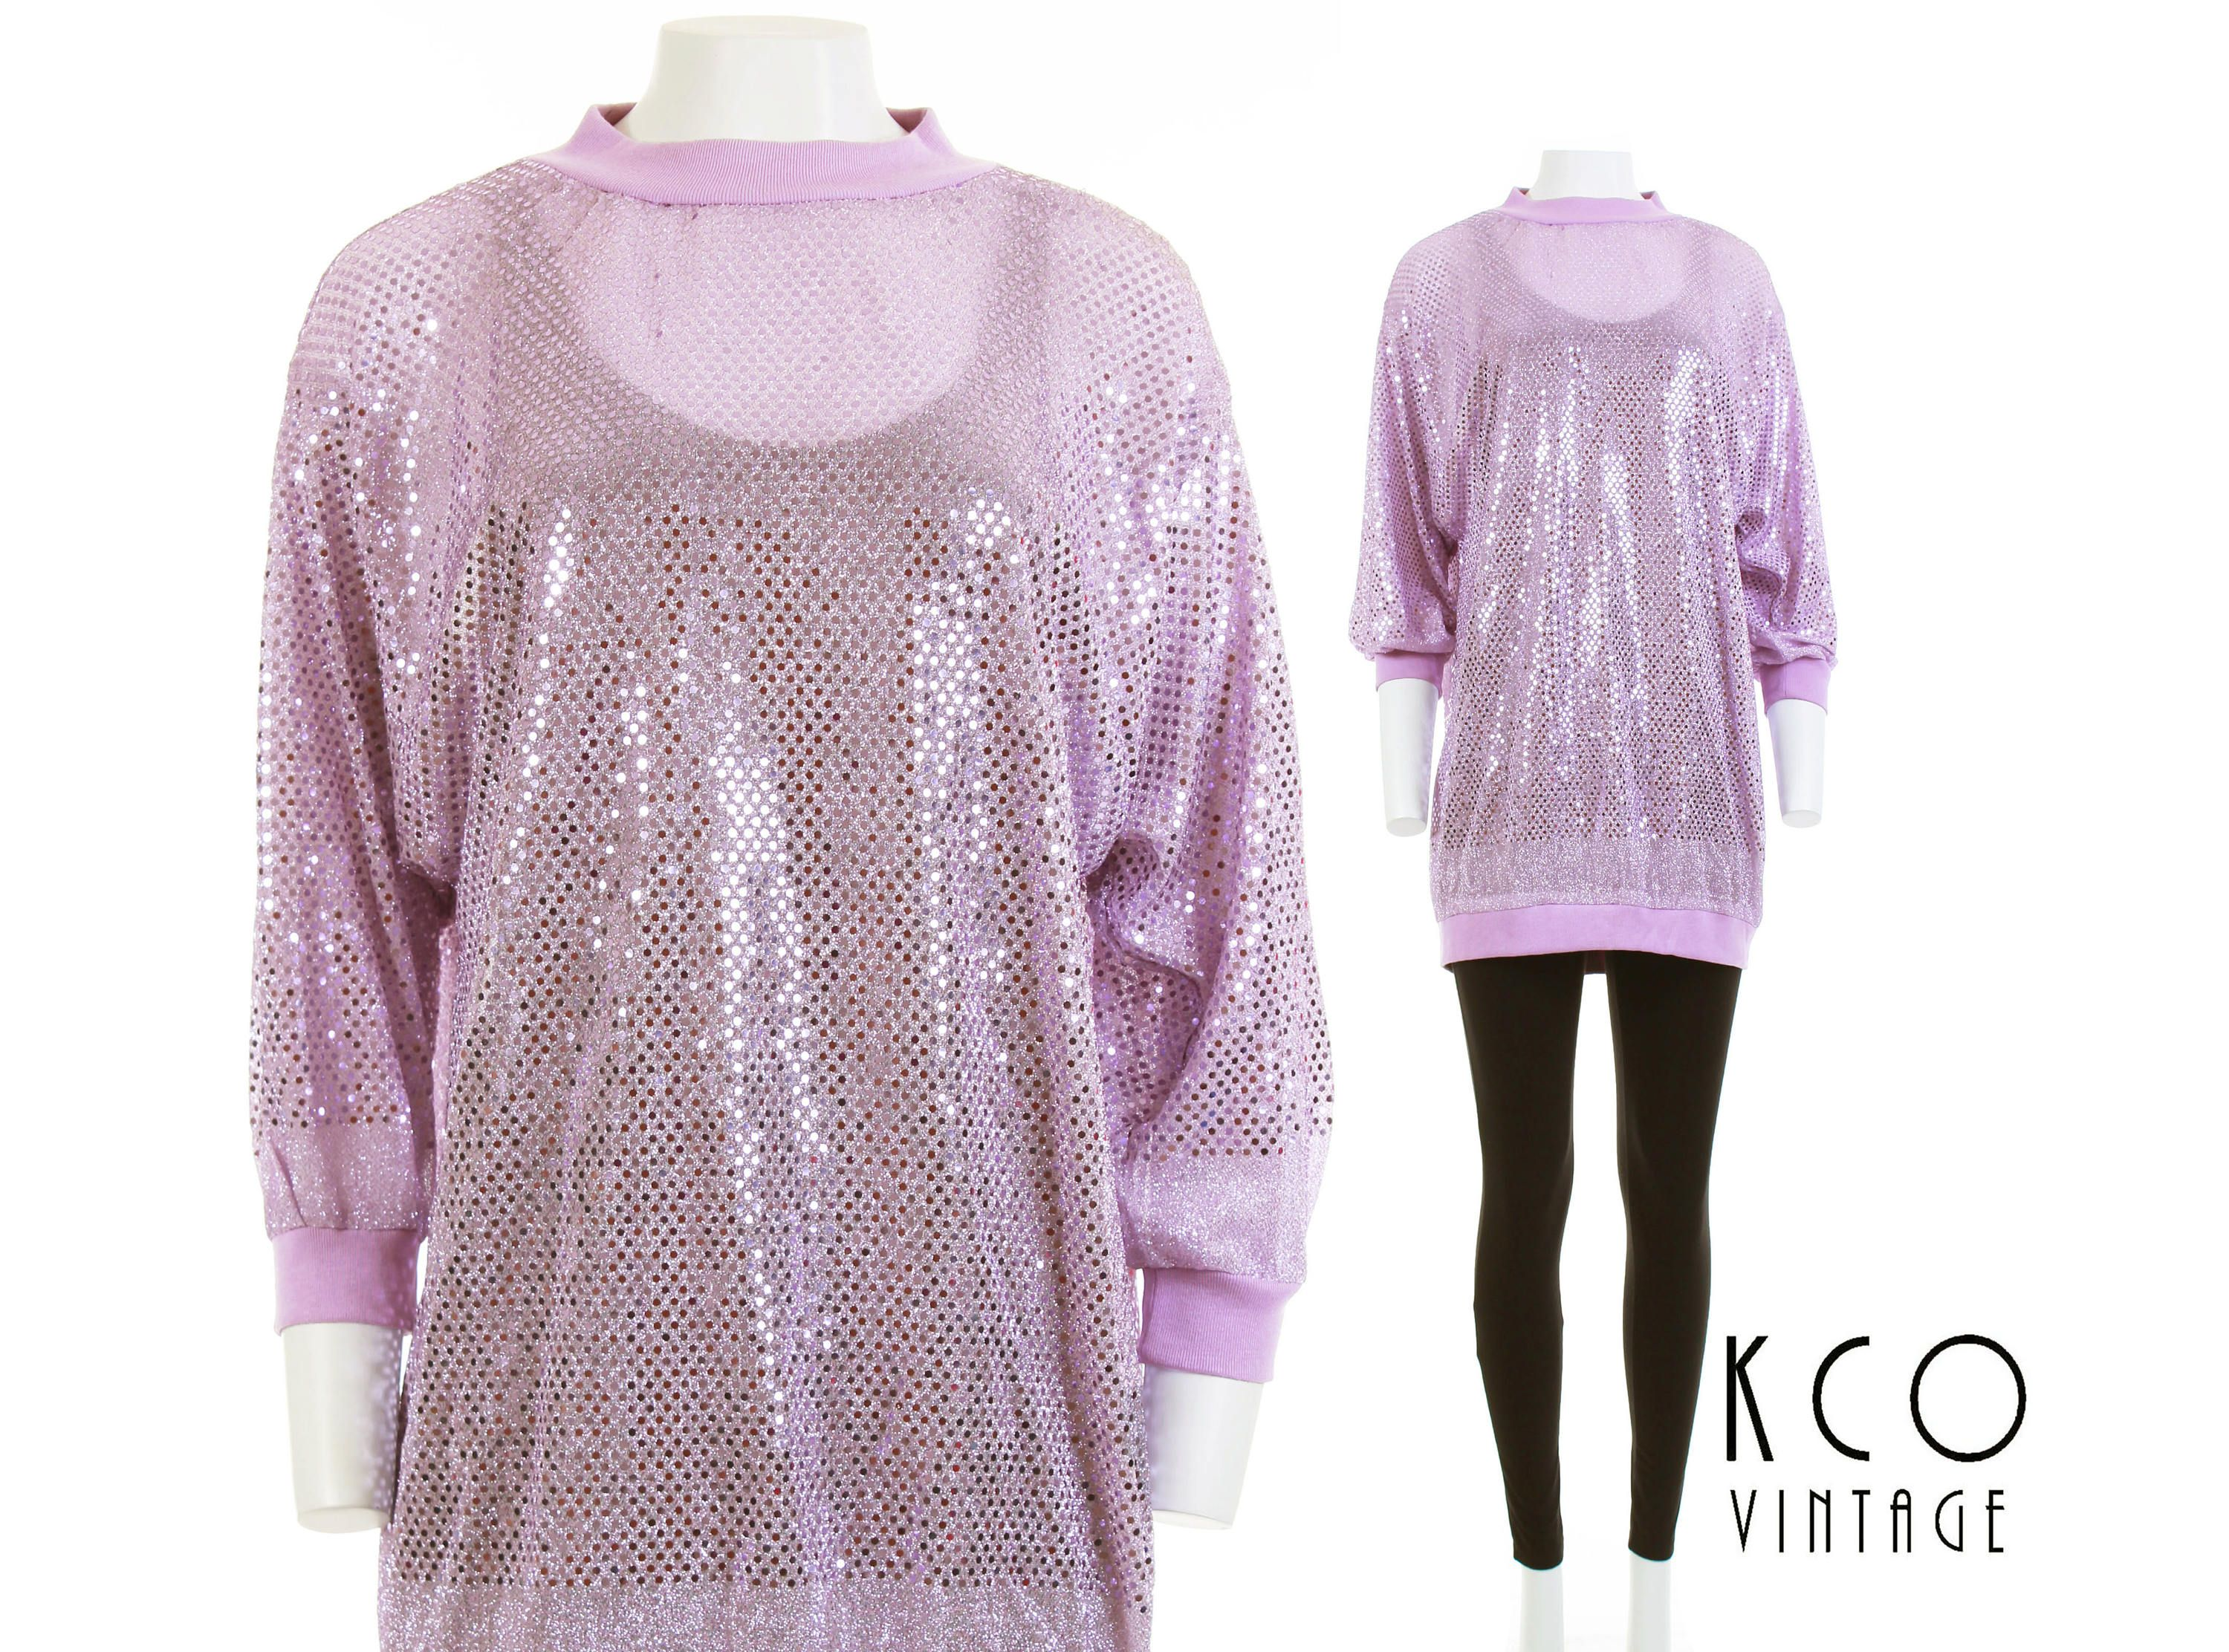 Sequin Top Slouchy Shirt 80s Clothing Pink Lavender Lurex Top 90s ...